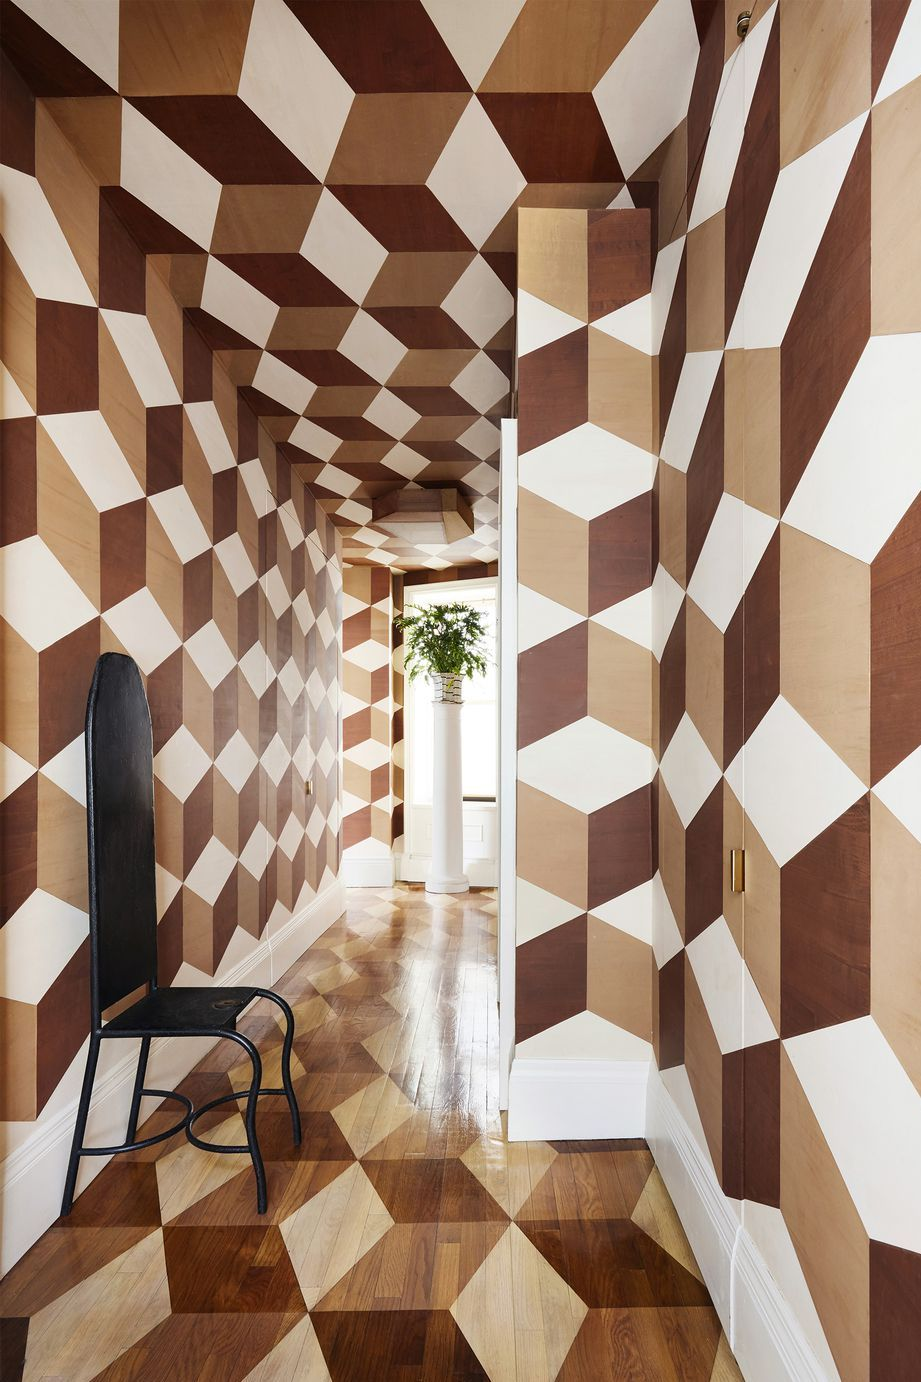 wooden geometric walls